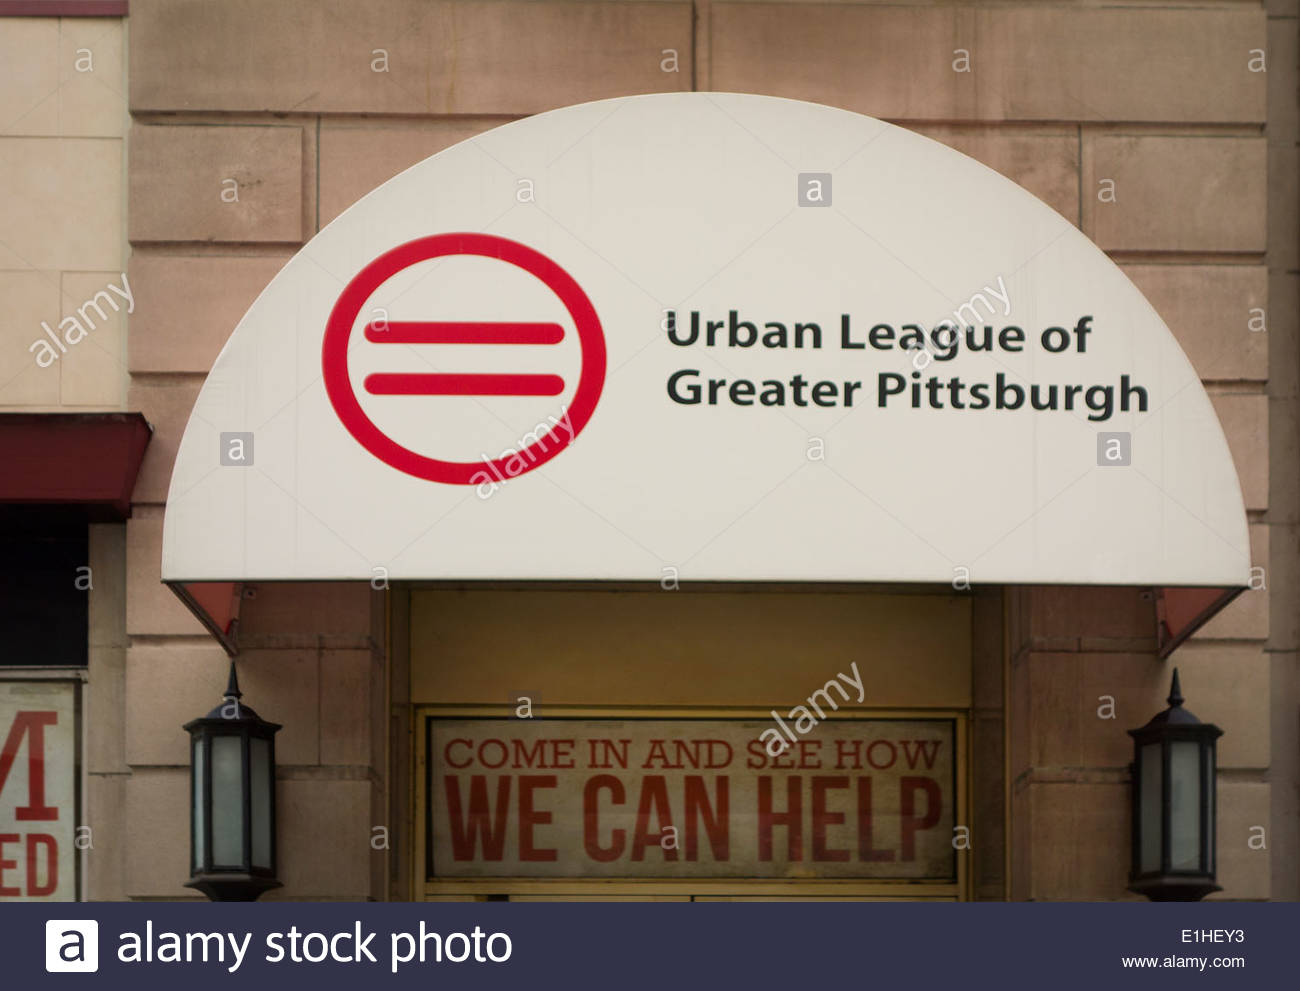 urban league of greater pittsburgh pa E1HEY3